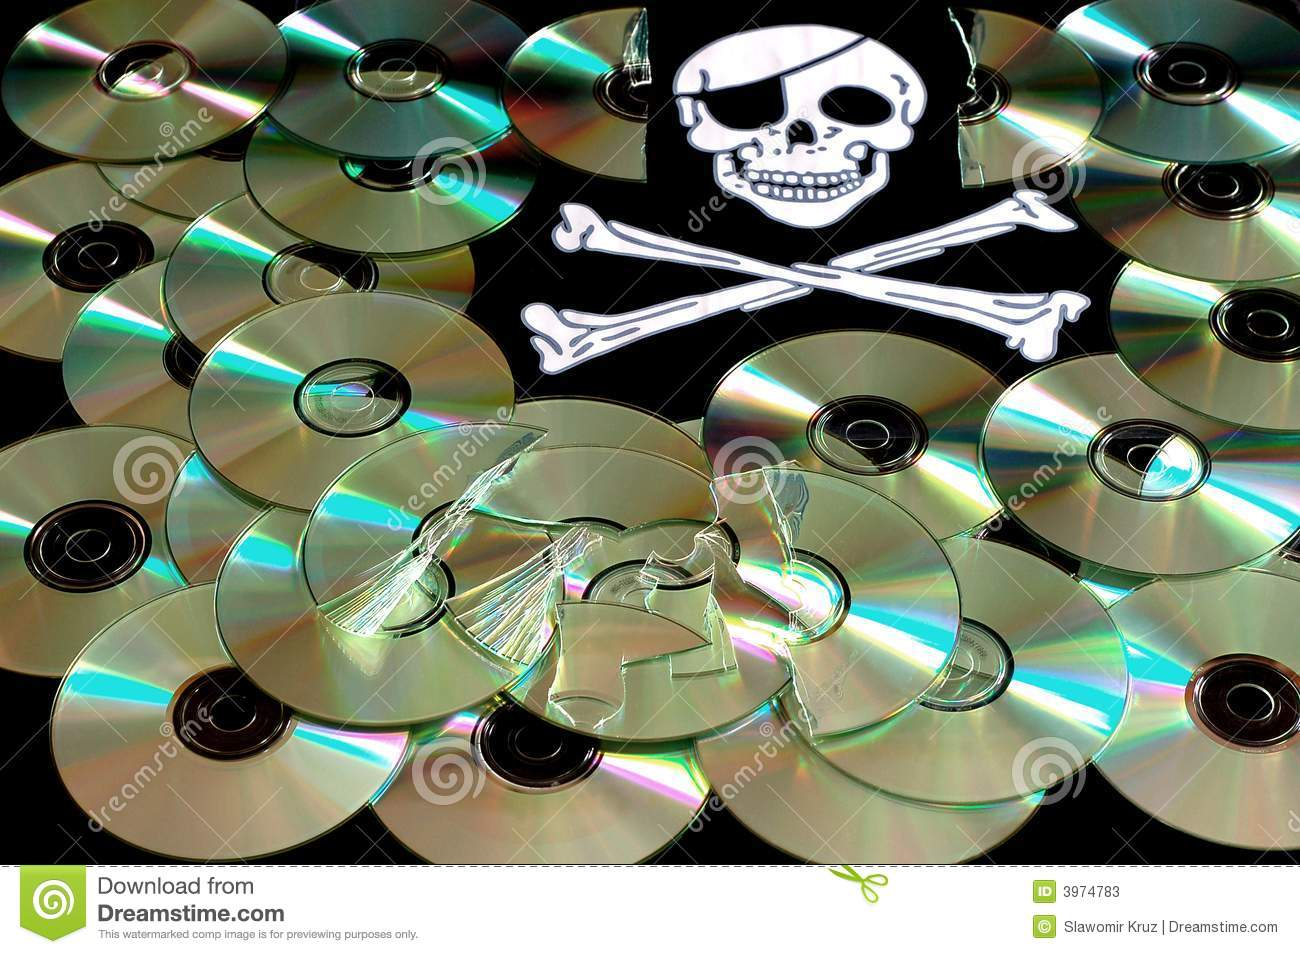 An exploration of mp3 file sharing and online music piracy